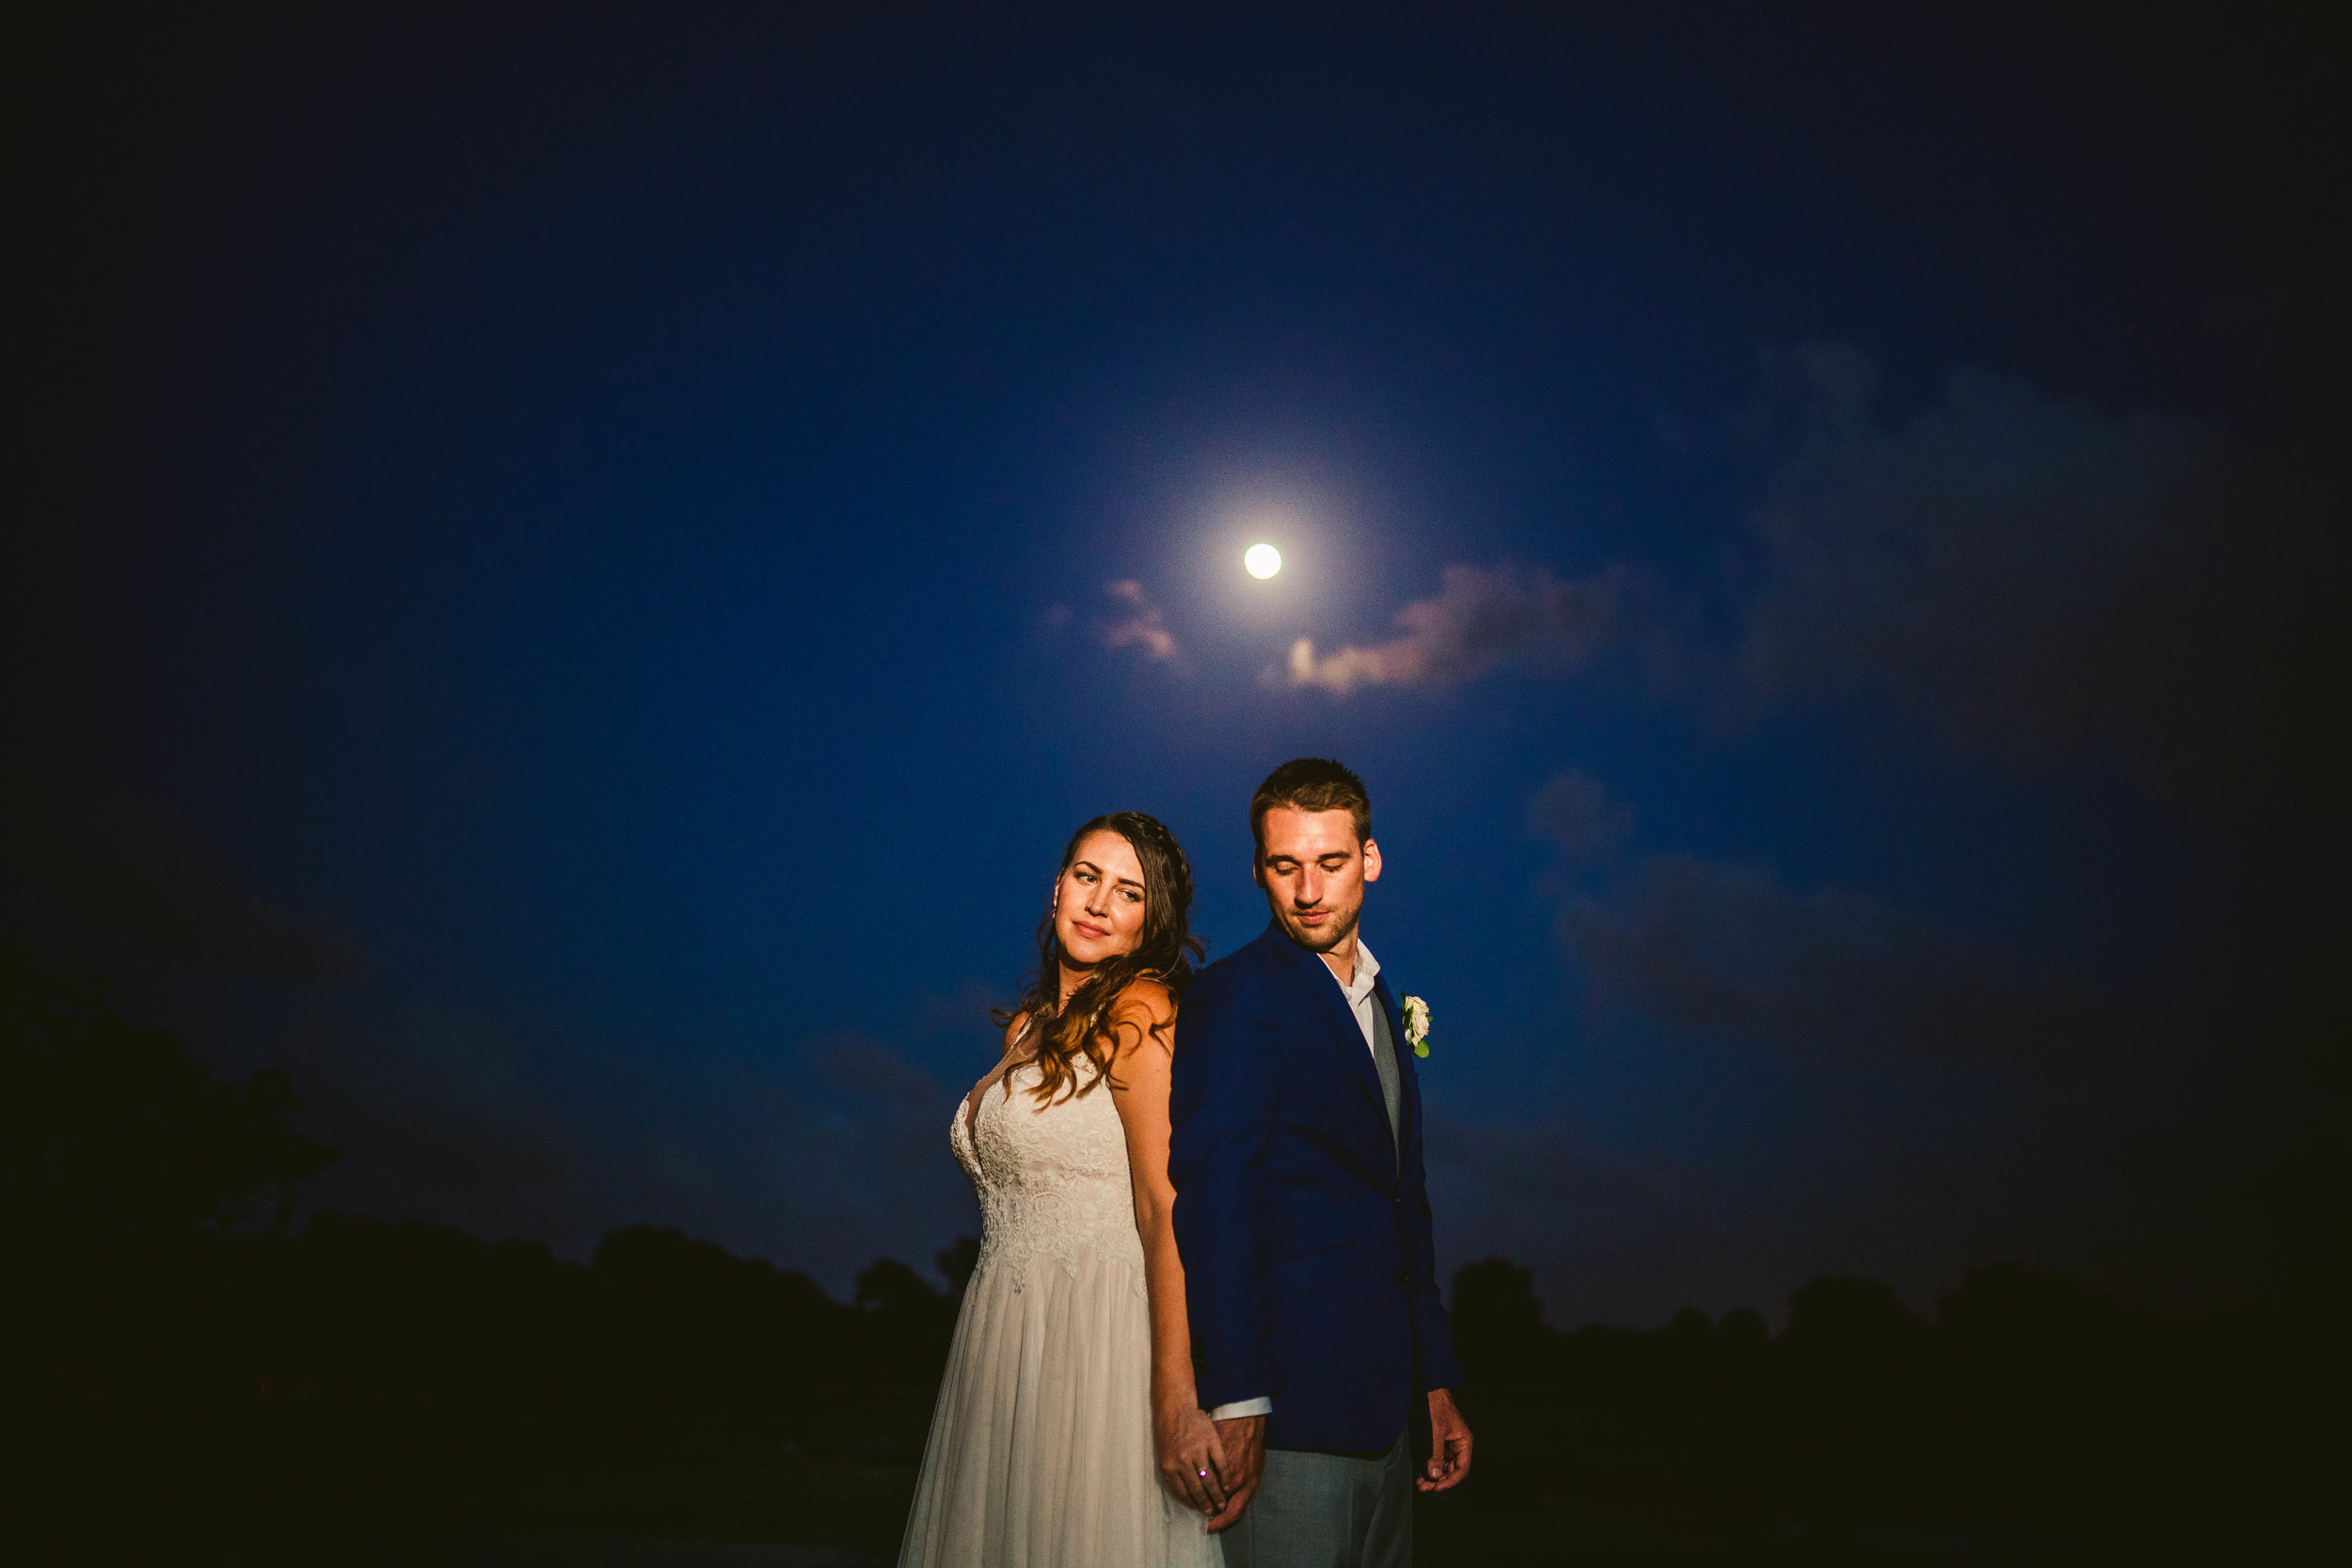 houston-wedding-photographer-photographers-photography-top-wedding-vendor-vendors-florist-floral-dress-gown-suit-tie-bride-groom-make-up-artists-artist-creative-photojournalism-night-portraits-south-shore-golf-club-resort-league-city-texas-tx.jpg